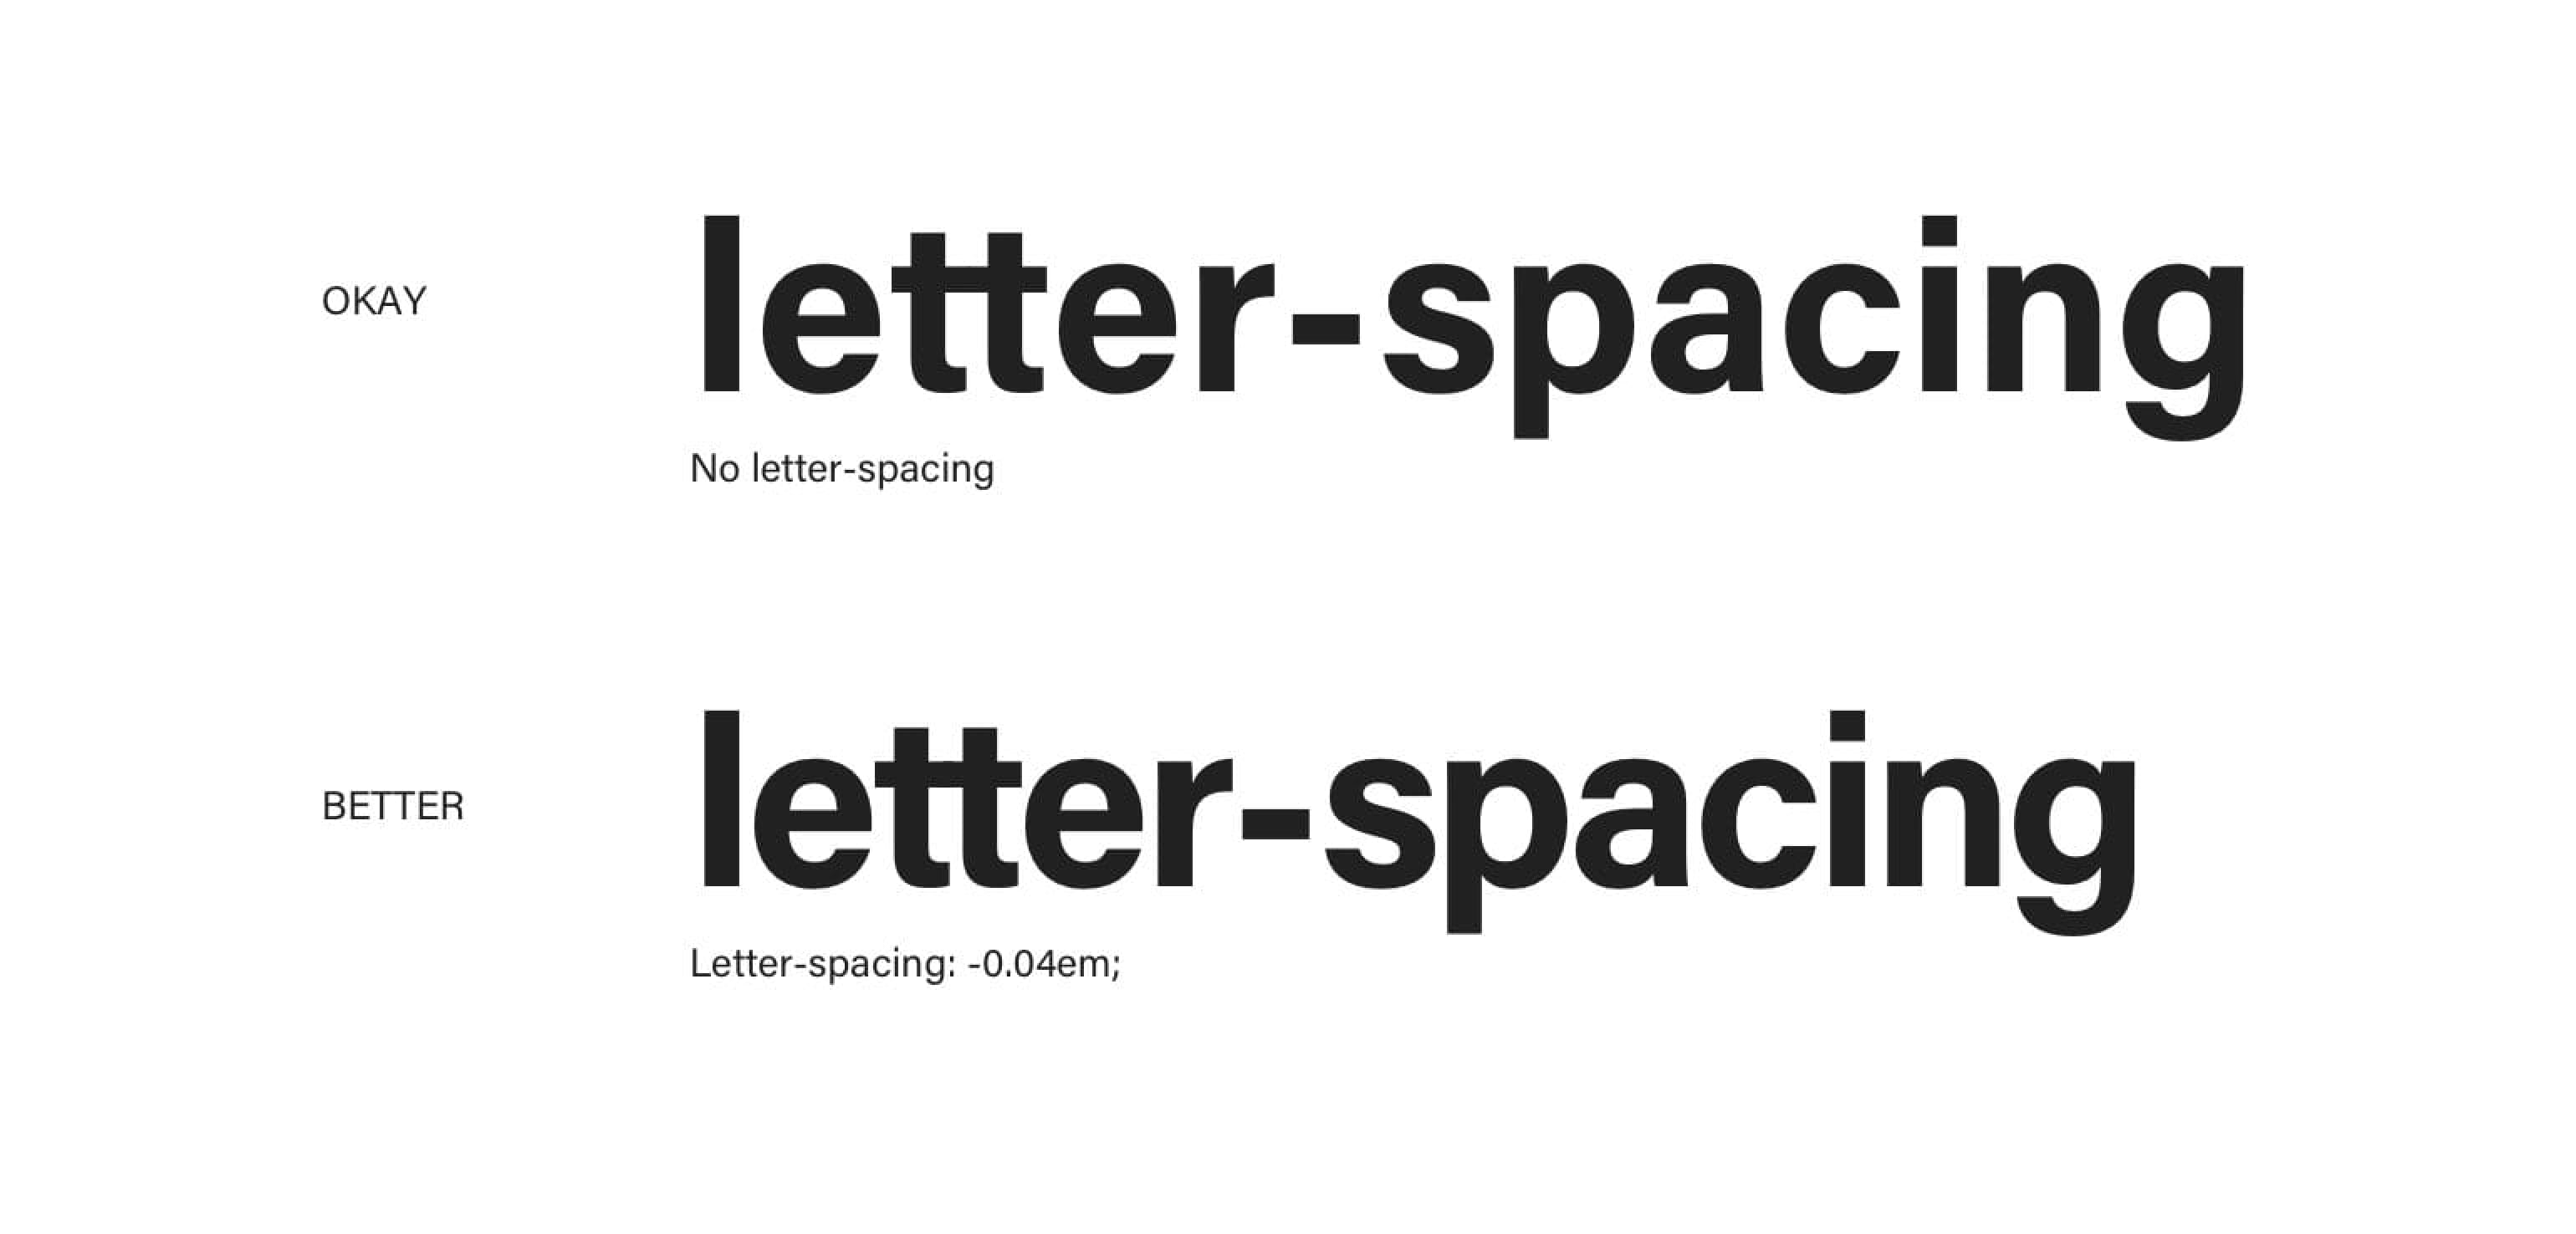 Applying negative letter spacing to headings makes them more compact and closer in appearance to the body type.